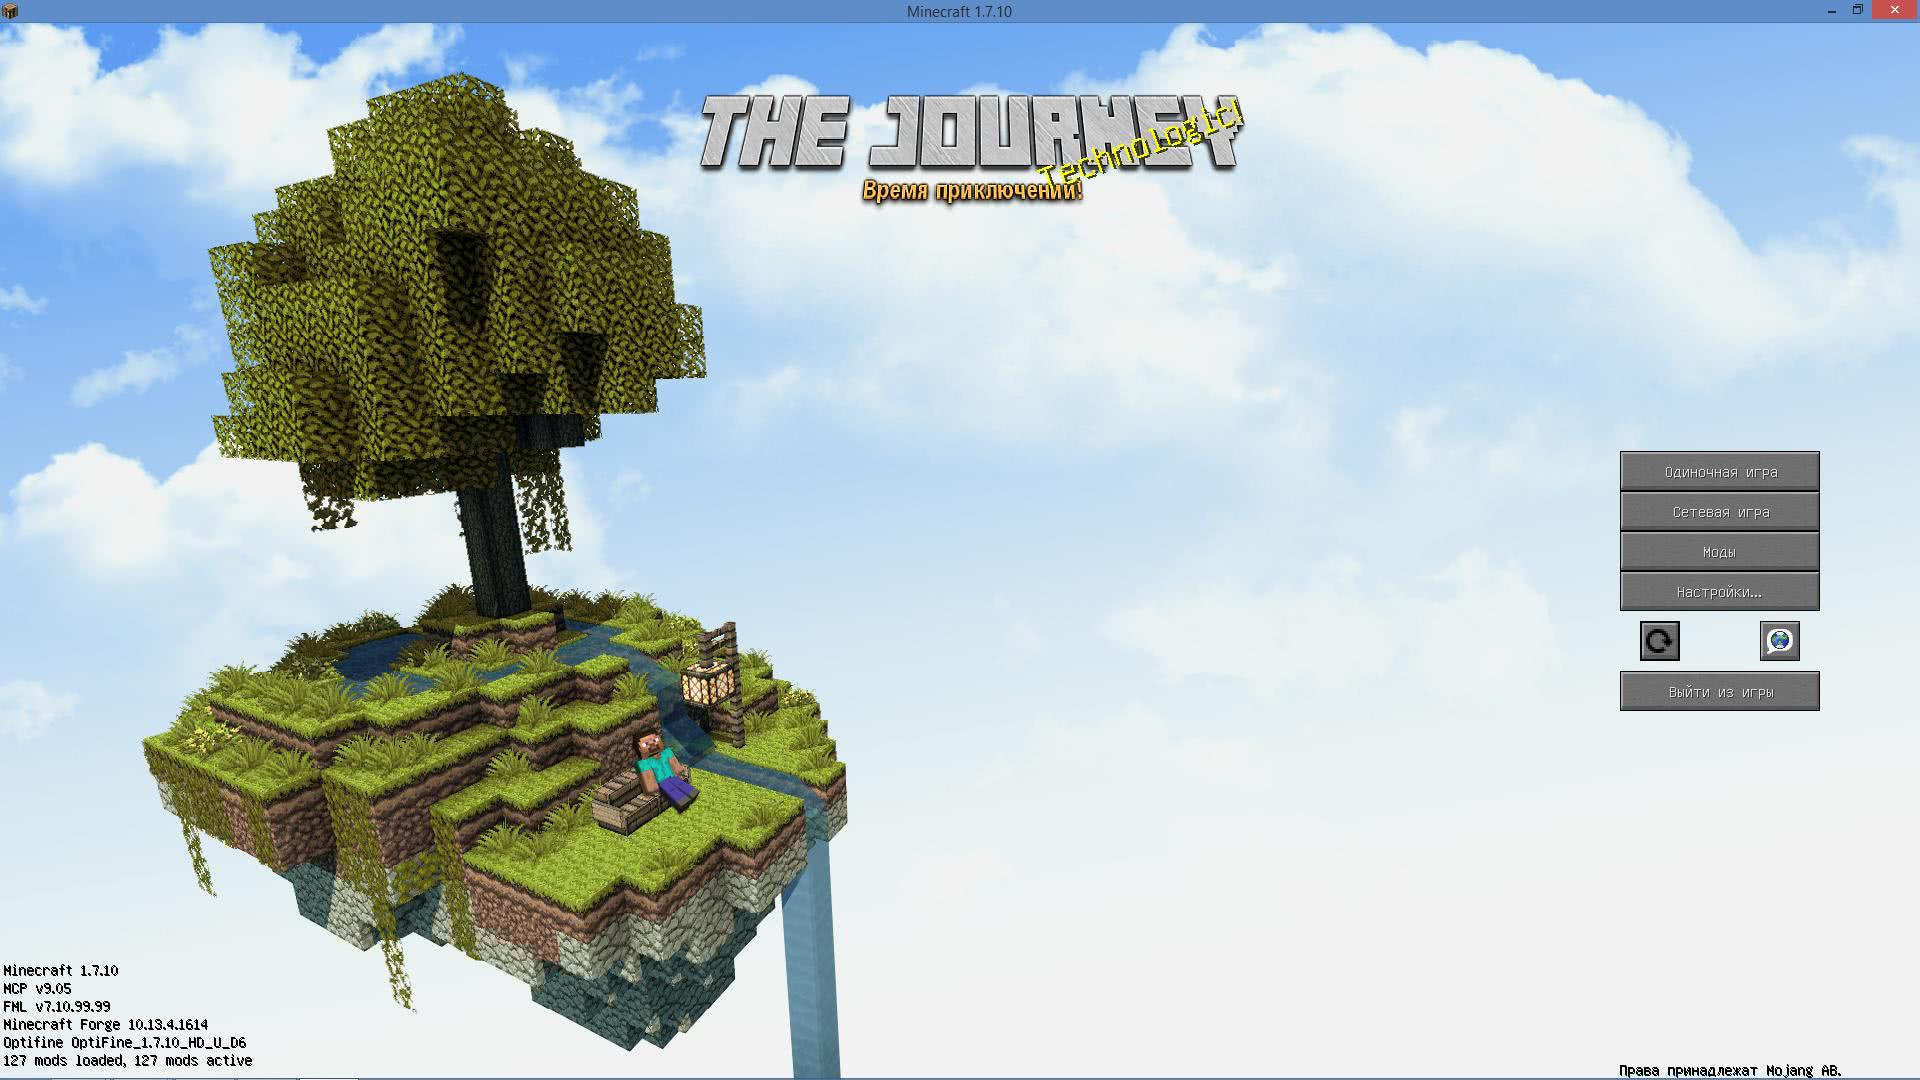 [Client+Server][1.7.10][110+ mods] The Journey by Obscurus 2.9.1.1 + установщик + VR